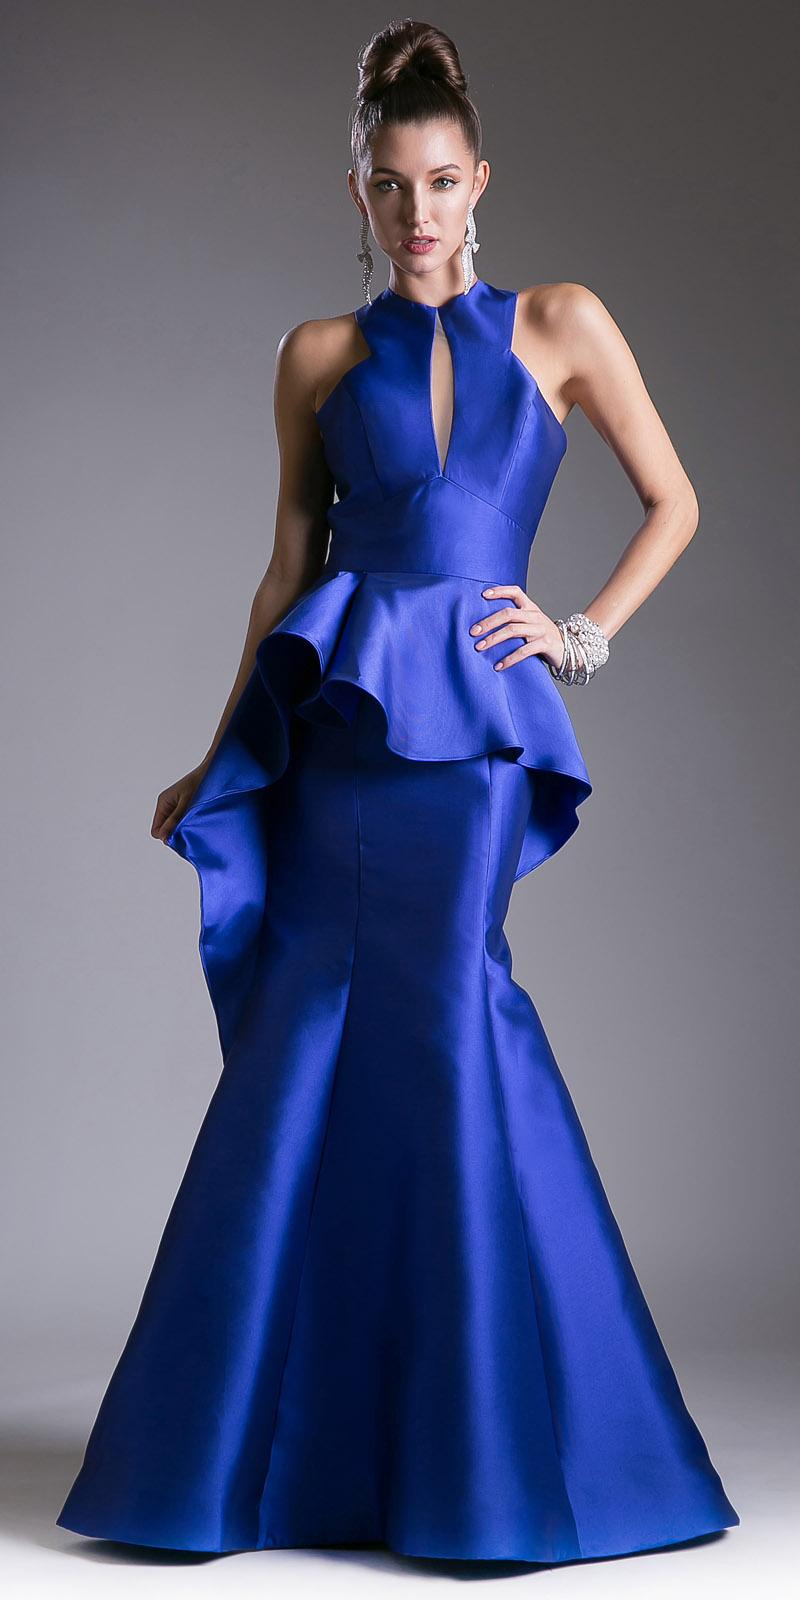 918bae126b Royal High Neck with Keyhole Peplum Mermaid Prom Gown Open Back